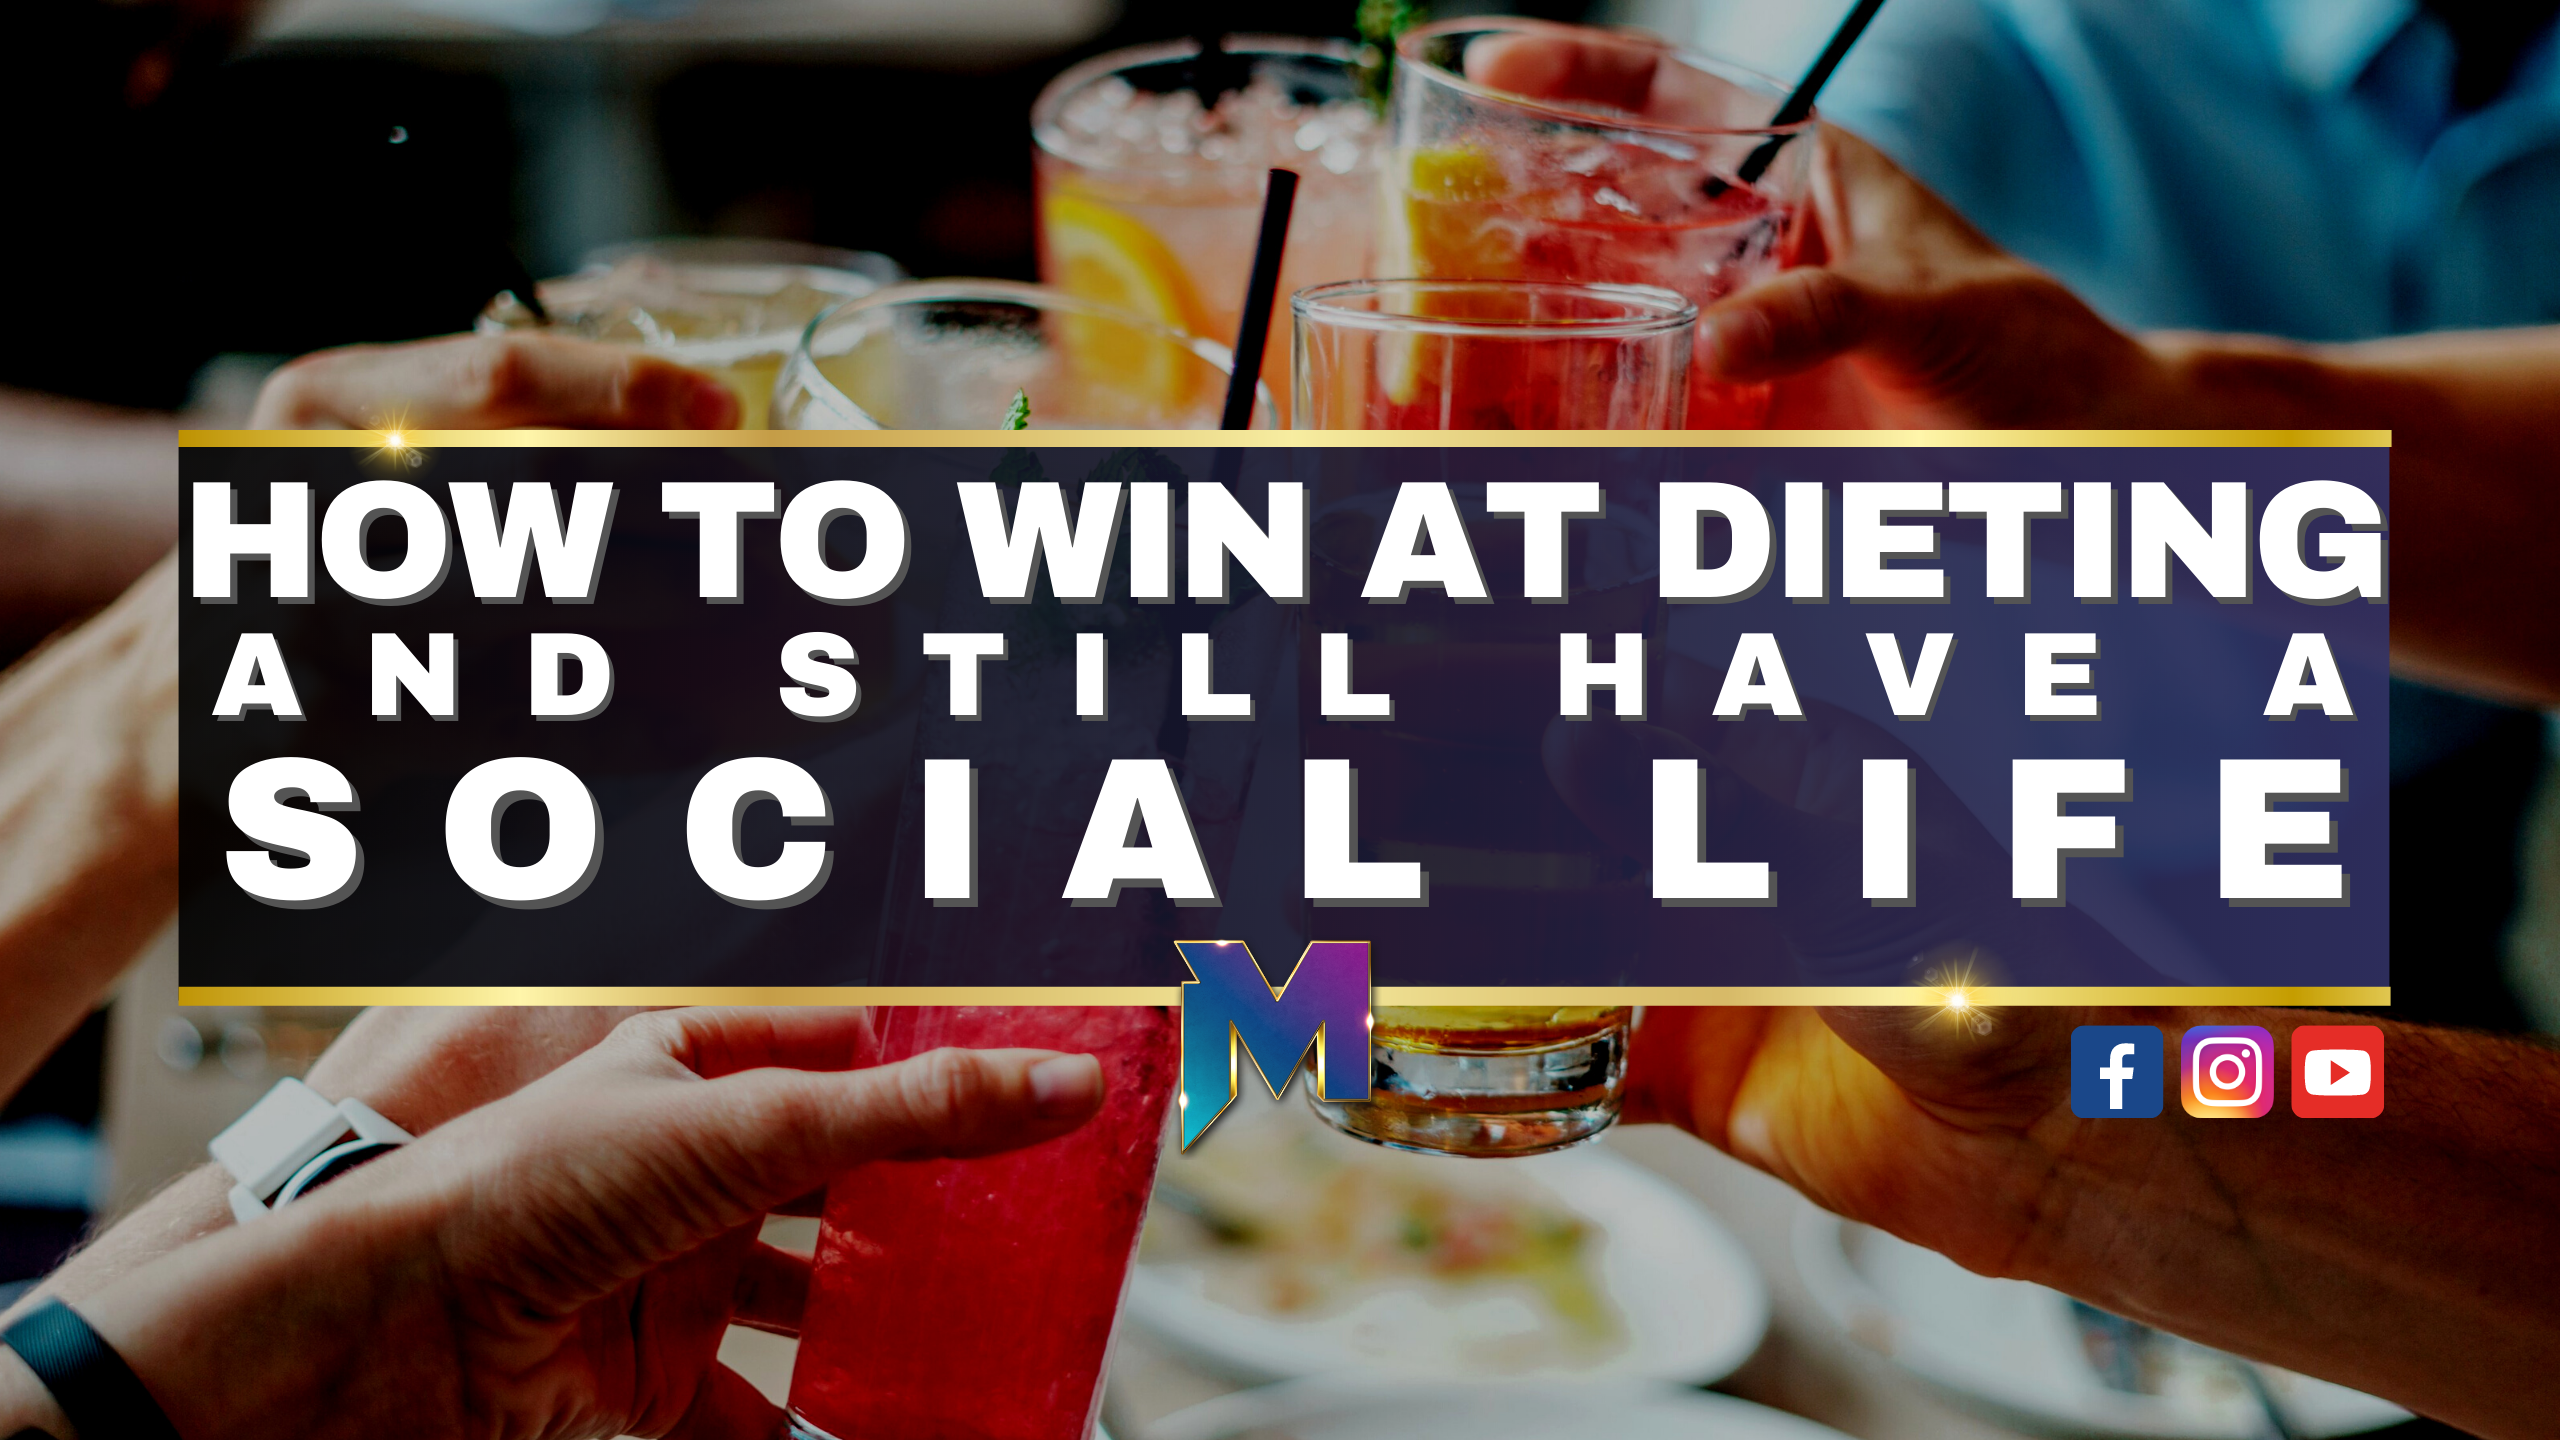 How to win at dieting and still have a social life